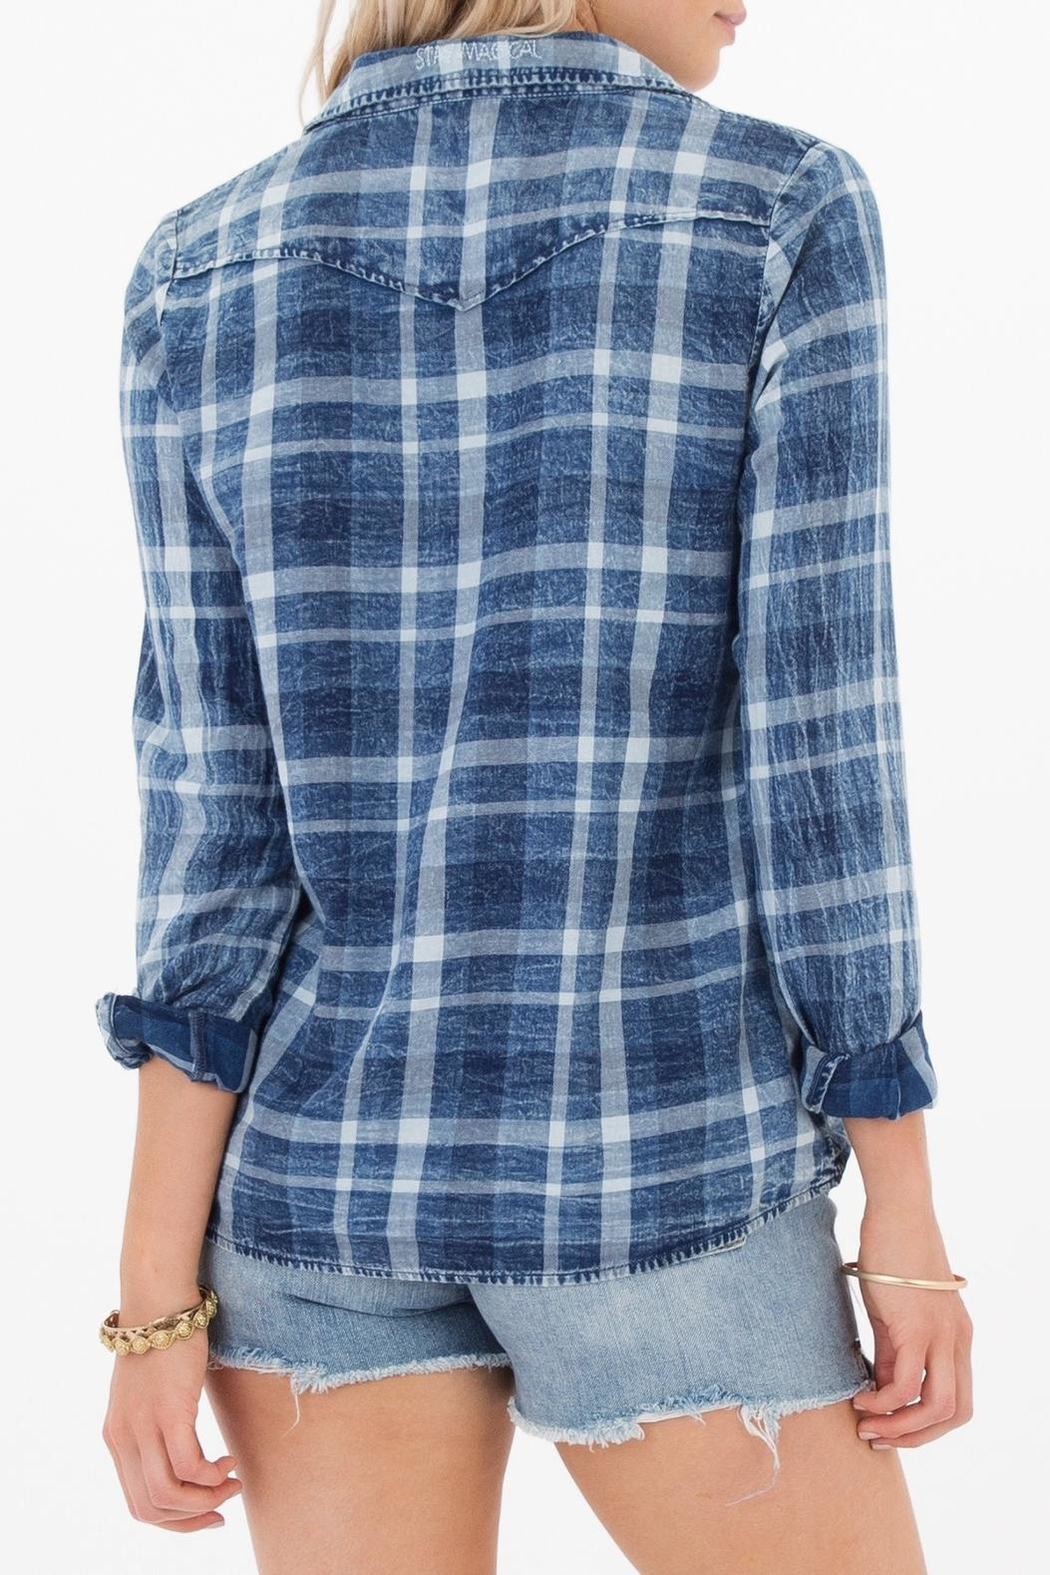 White Crow Blue Plaid Top - Front Full Image